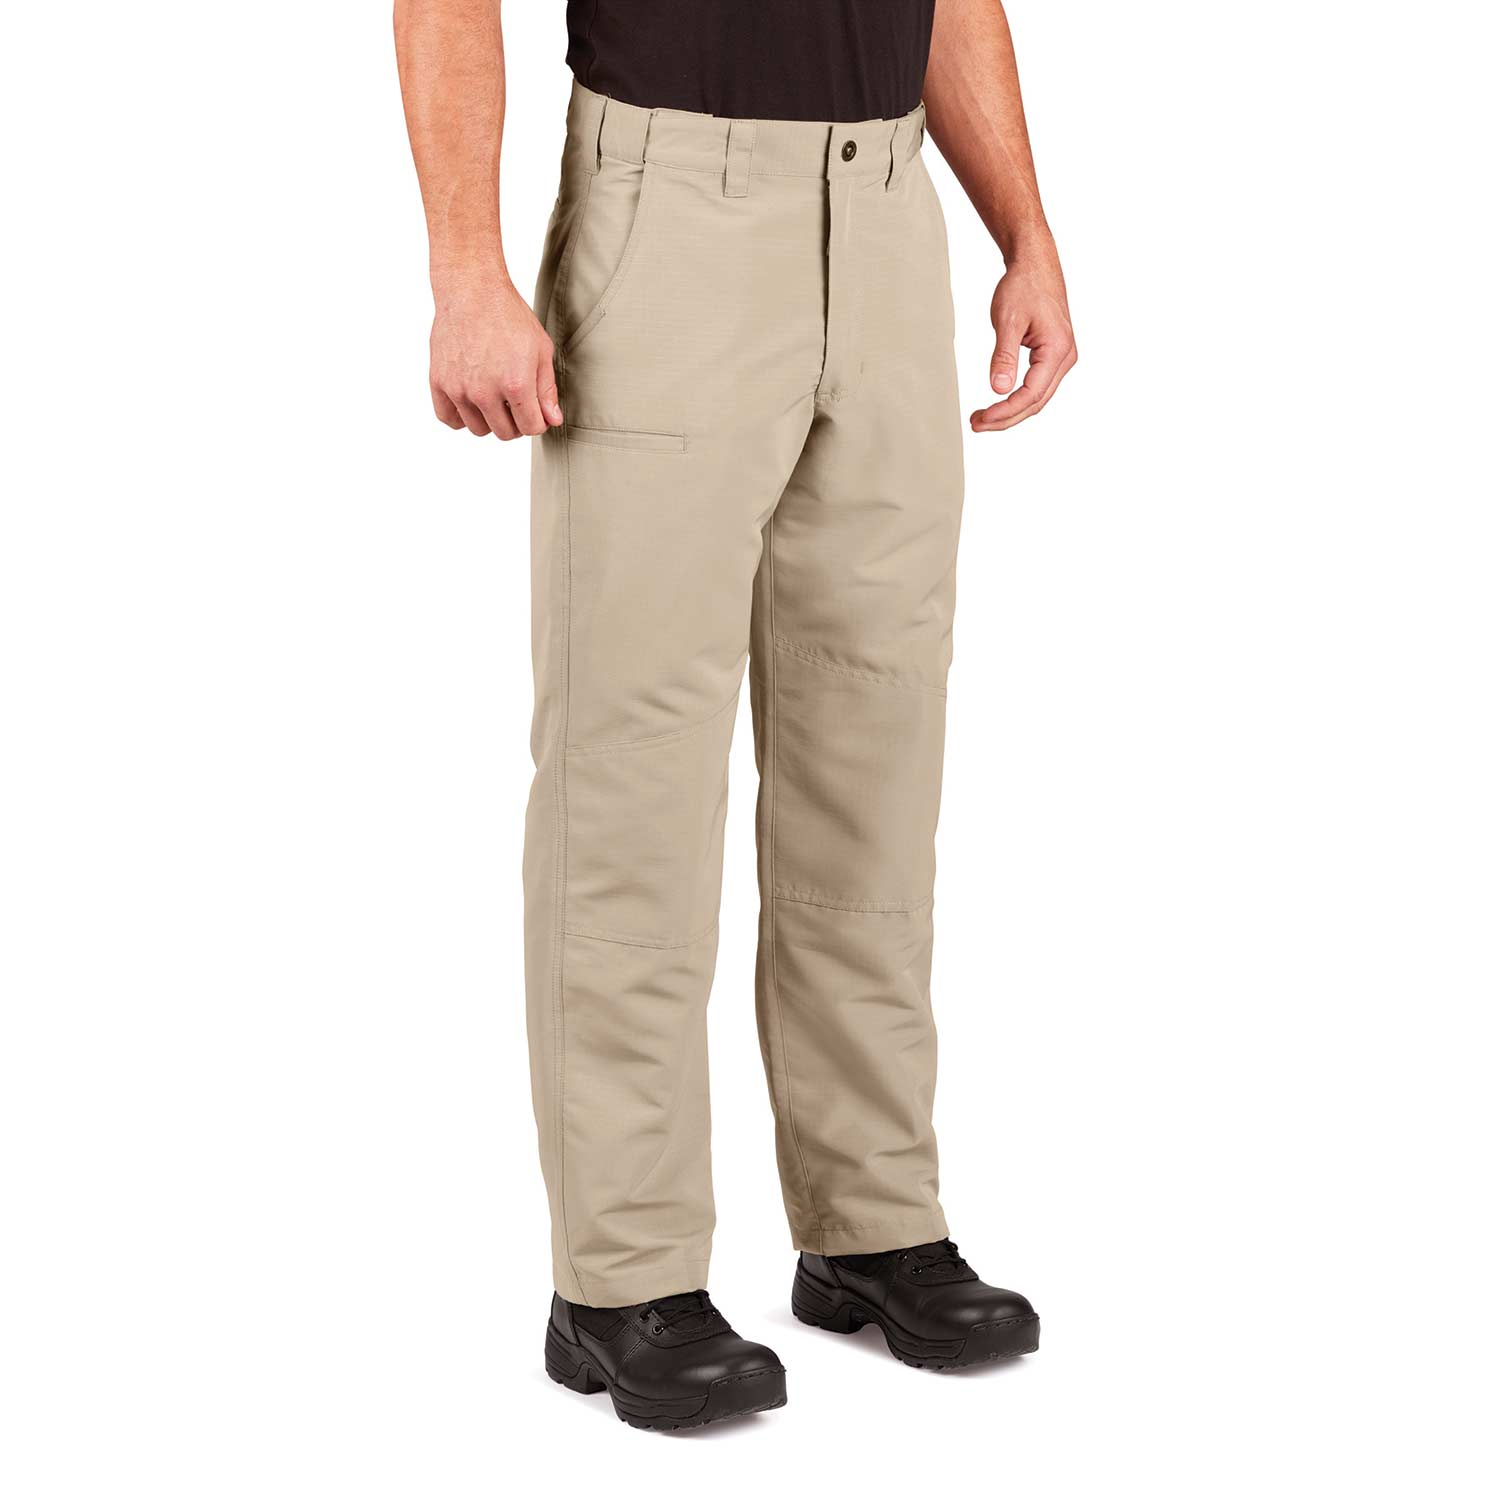 PROPPER EdgeTec Slick Tactical Pant